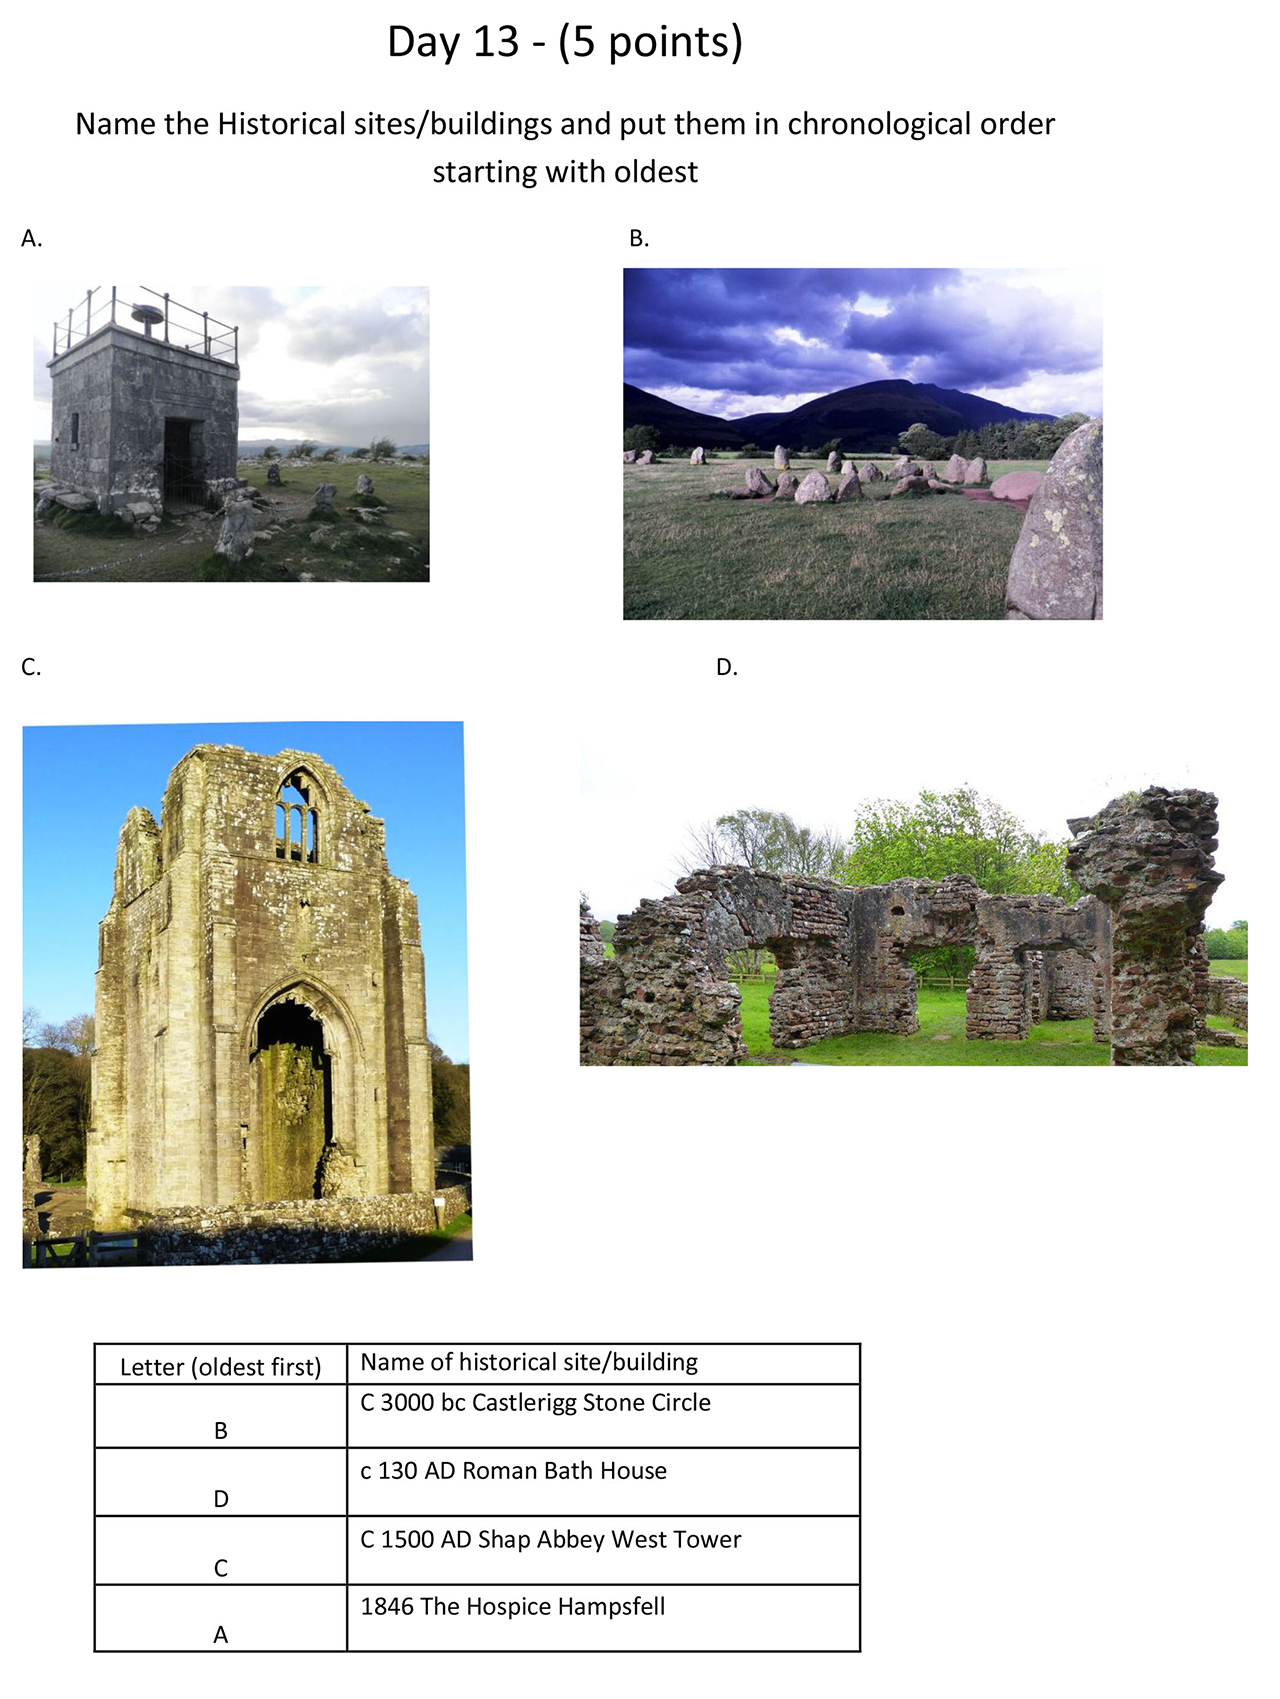 Day-13-Historical-dates-of-sites-buildings